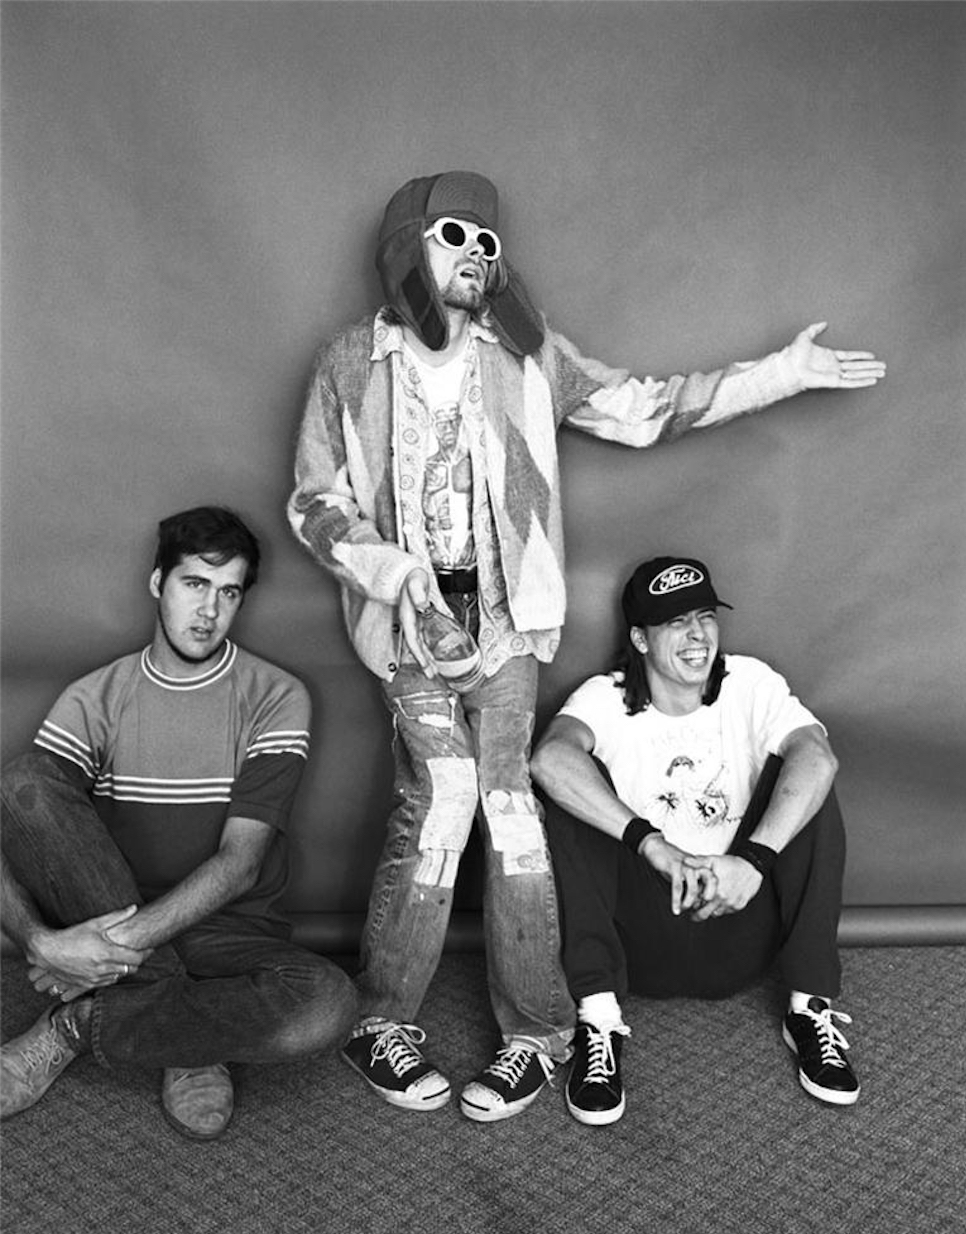 """Bassist Krist Novoselic, Cobain and drummer Dave Grohl at the Omni Hotel. """"They had a nice energy together,"""" Frohman says. """"They liked to laugh. They didn't really care what they looked like and how they presented themselves."""""""